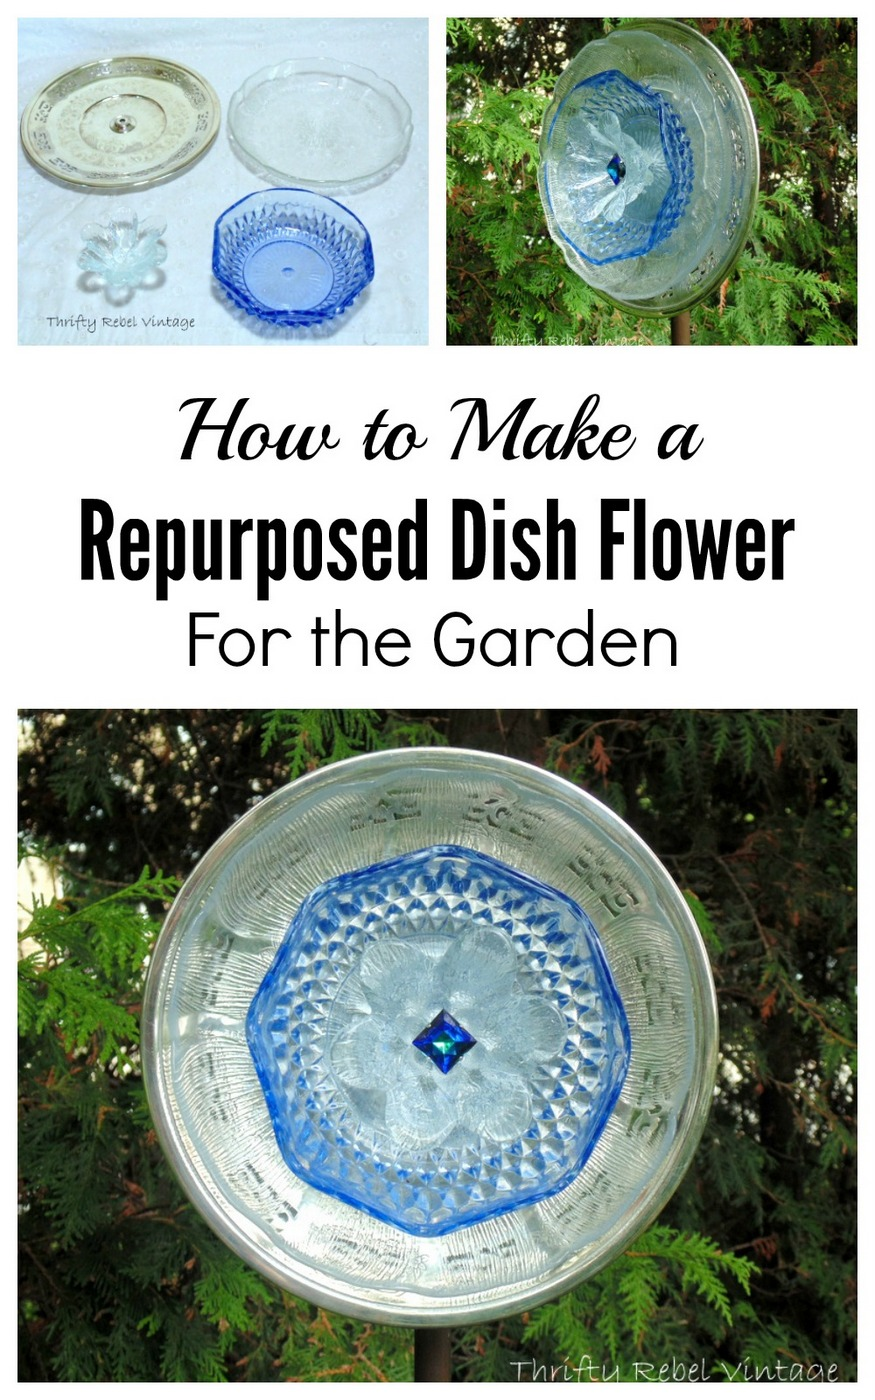 Add some whimsy to your garden by making a garden art dish flower using thrifted and repurposed dishes. #gardenart @plateflower #diyflower #diygardenflower #junkflower #junkgardenart #dishflower